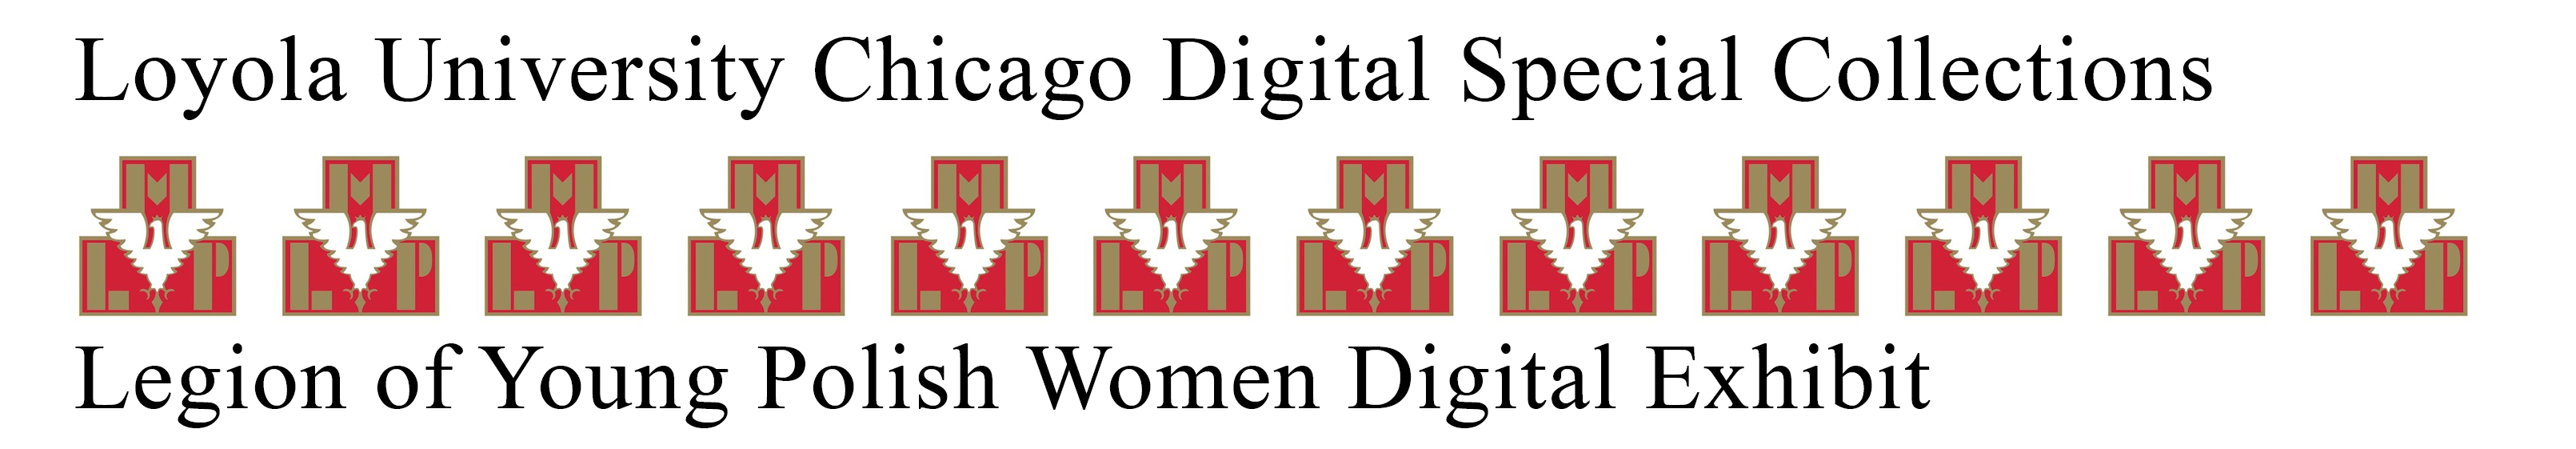 Loyola University Chicago Digital Special Collections